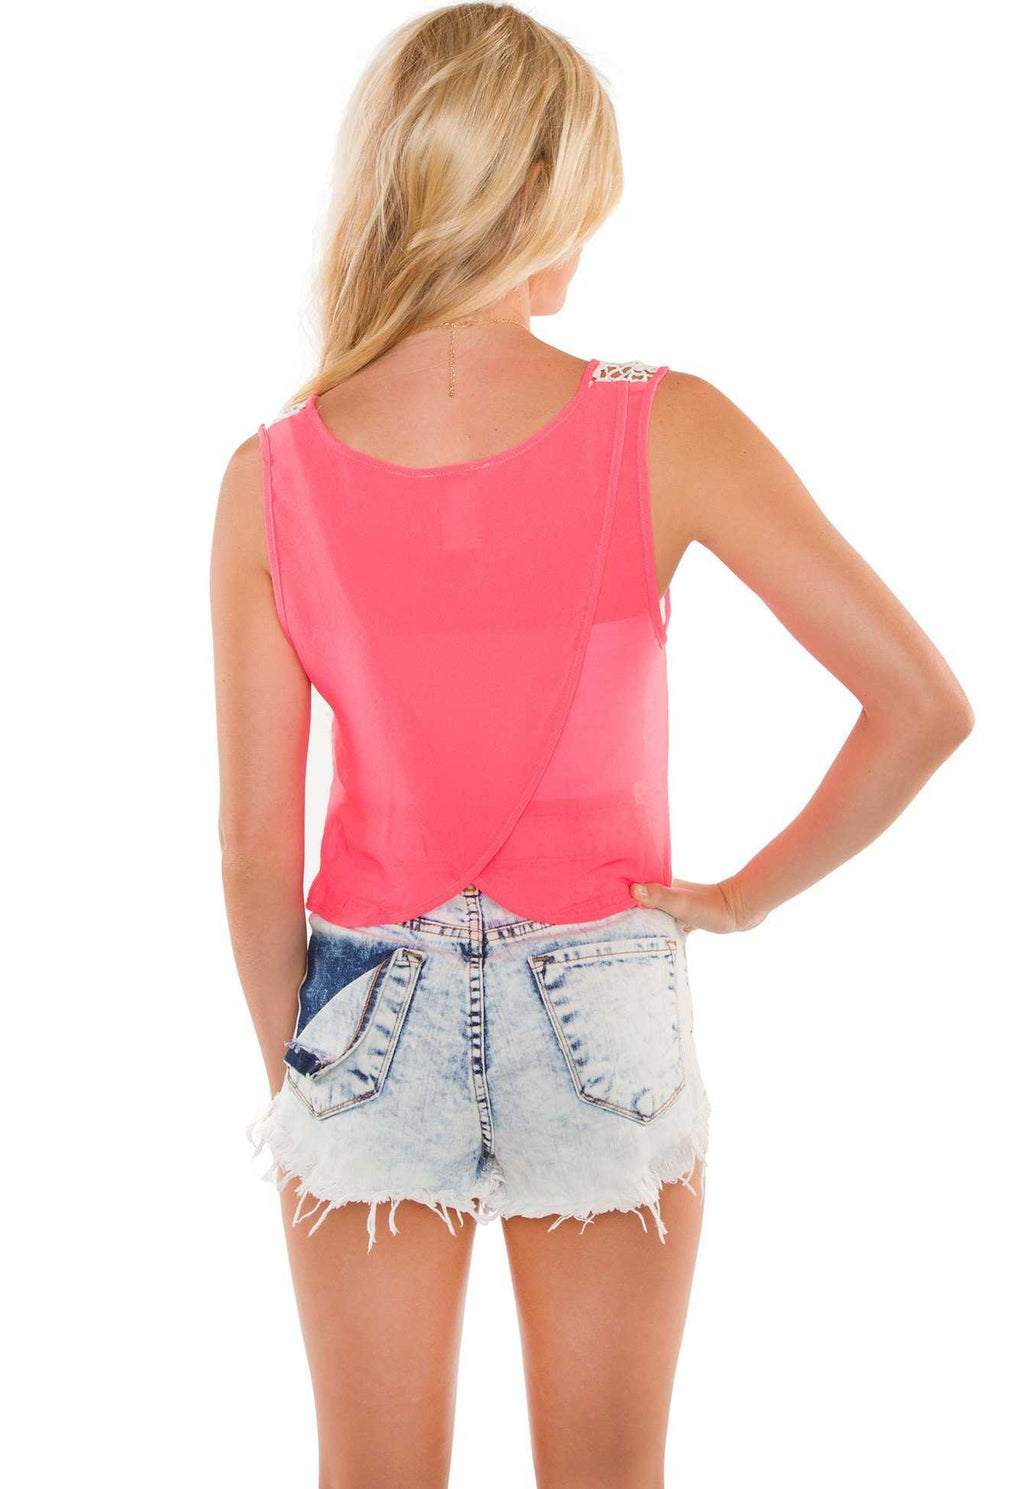 Tops - Maryland Lace Crop Top - Neon Pink